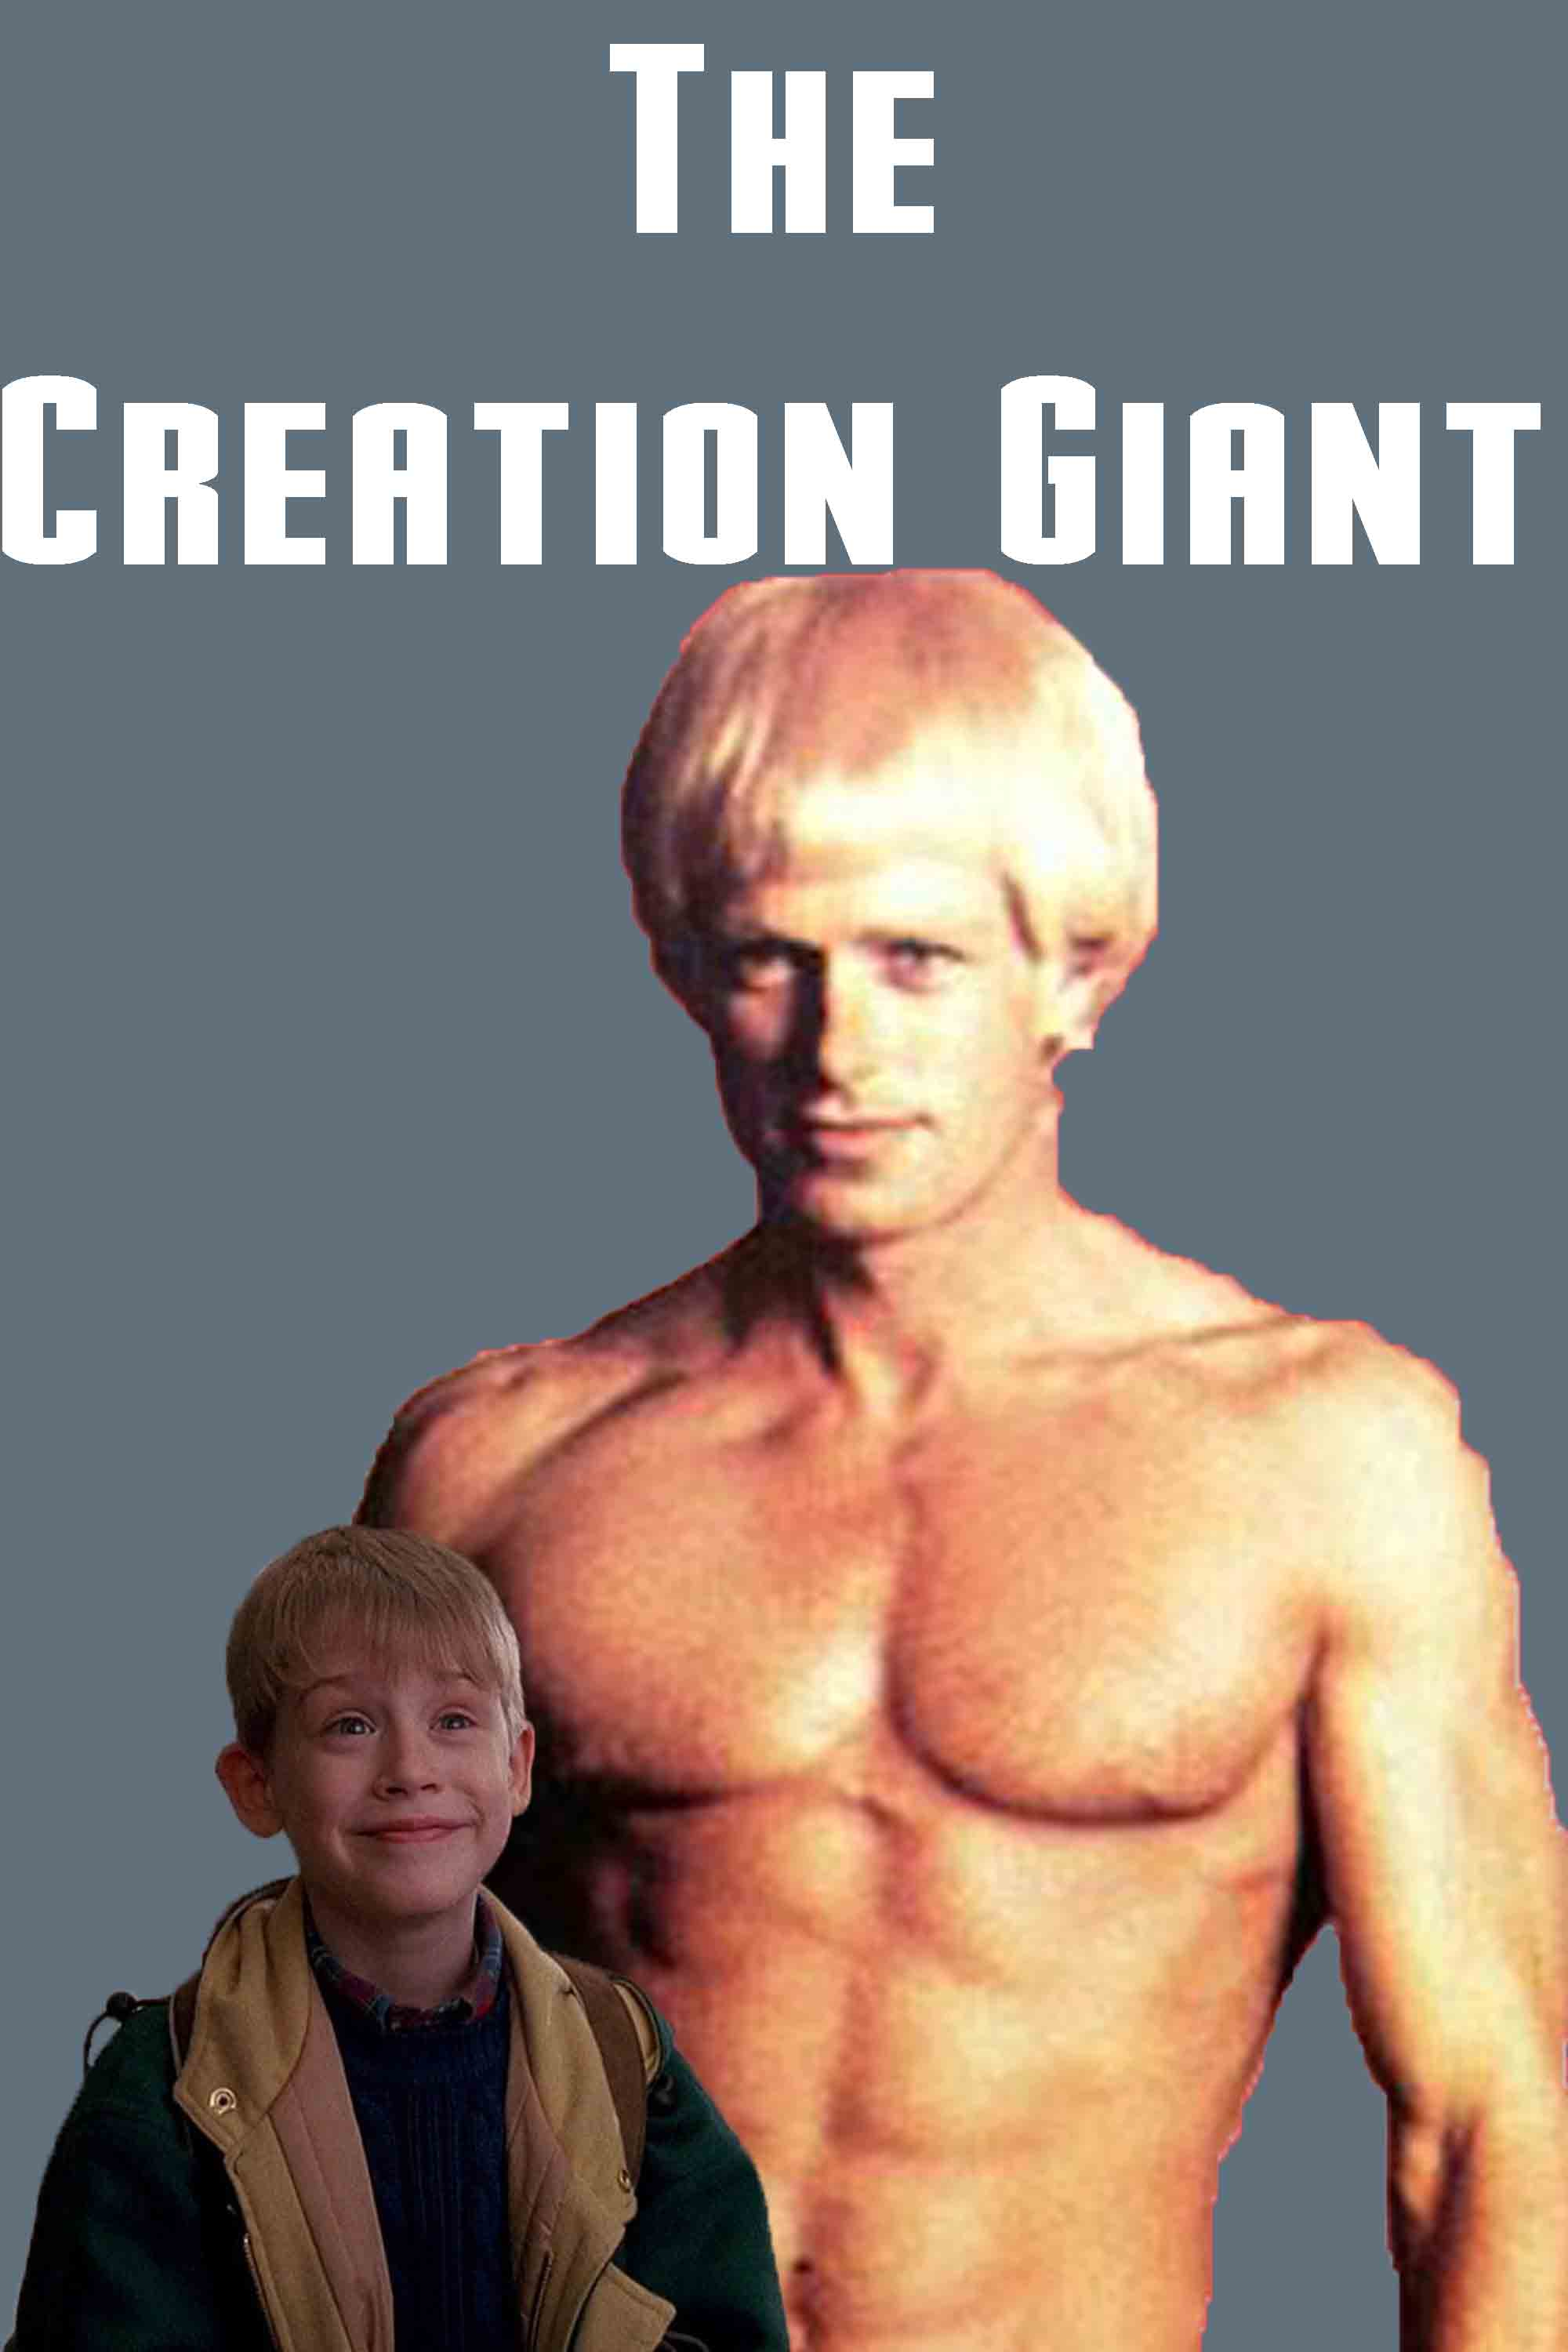 The Creation Giant